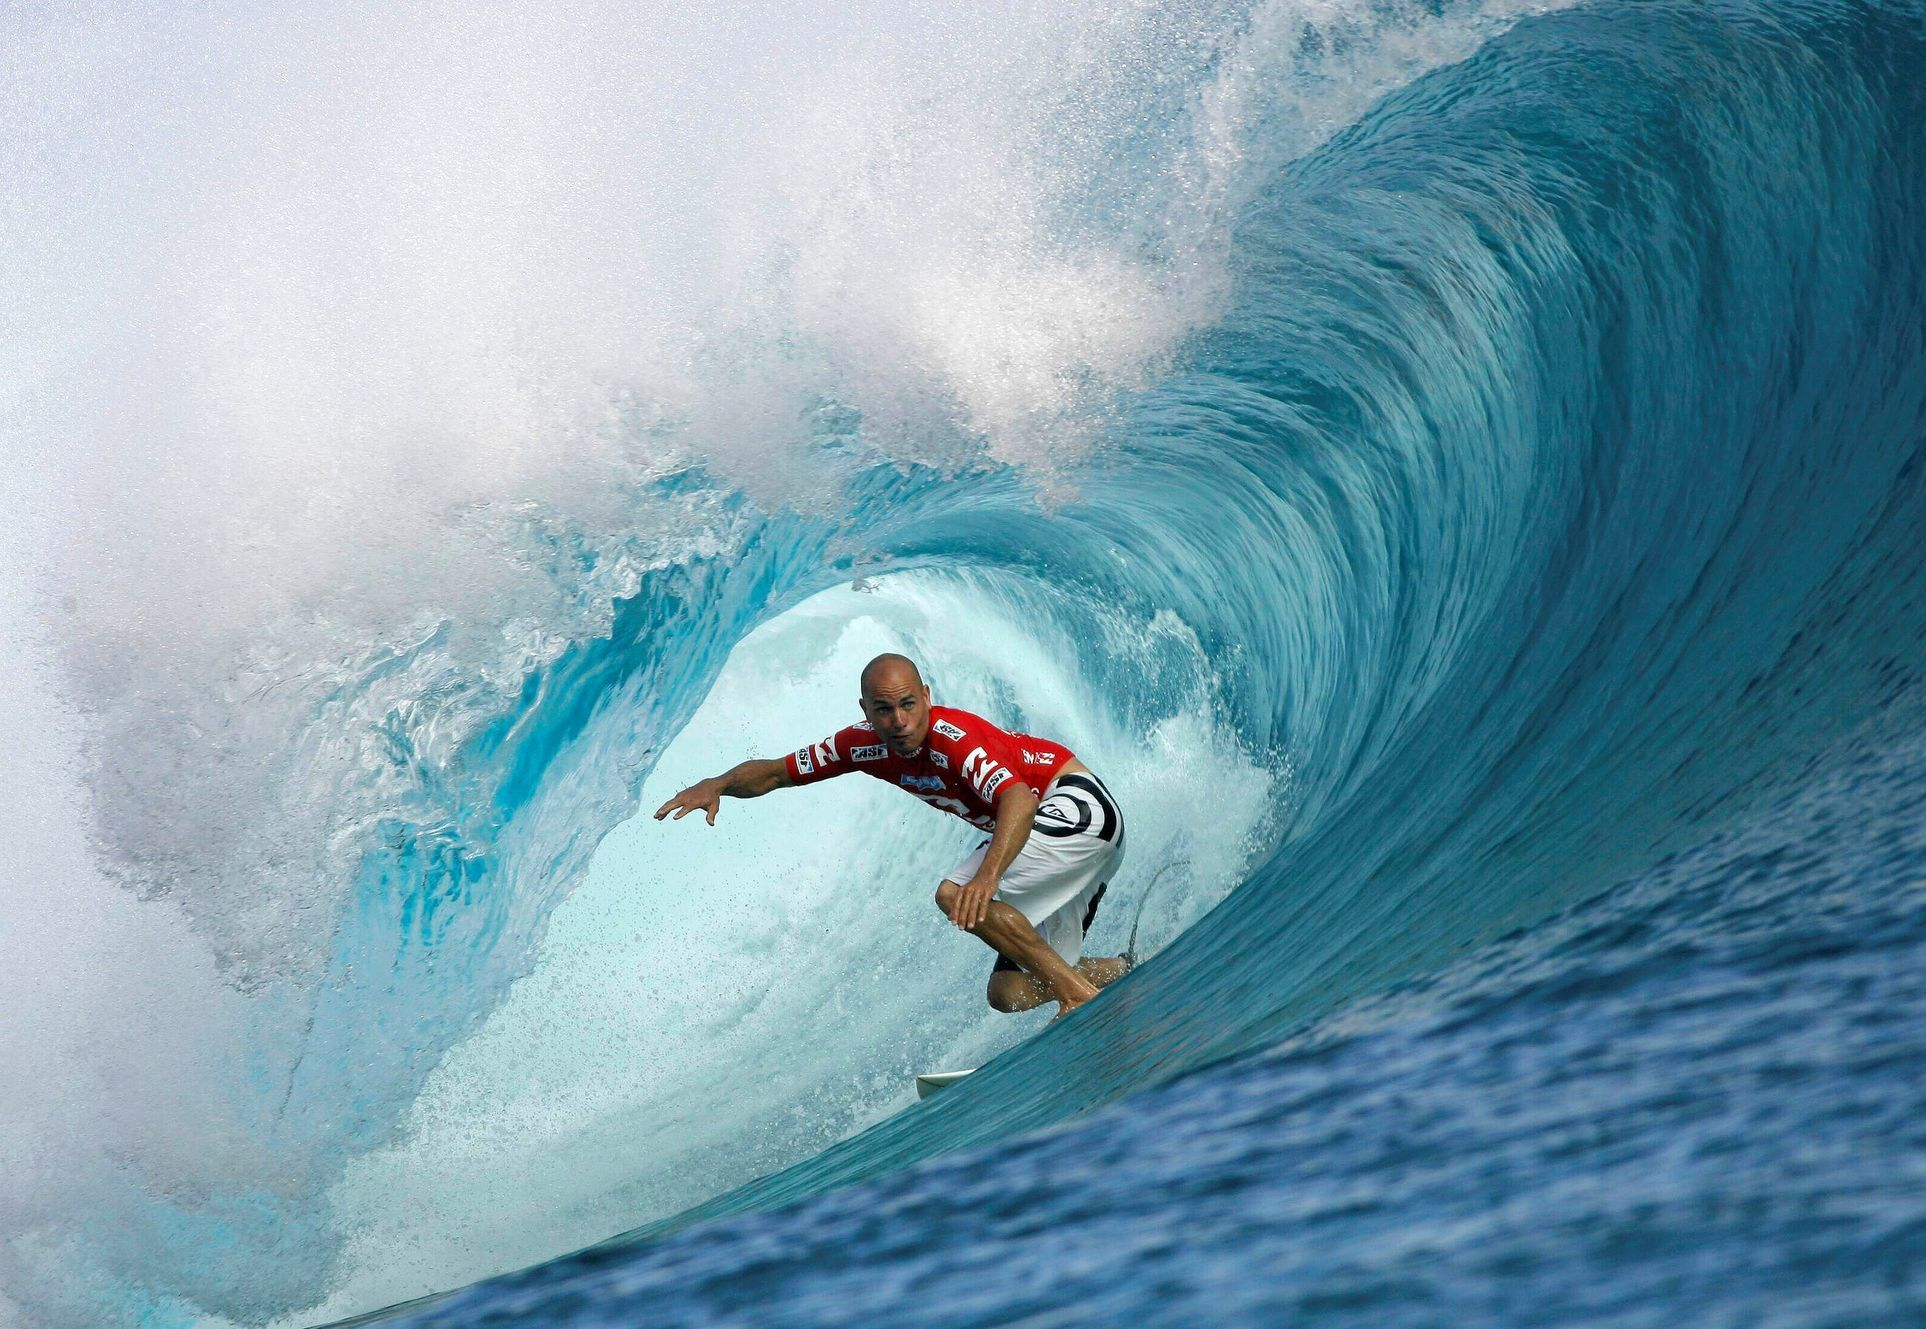 FILE PHOTO: Surfer Slater of the U.S rides a wave during the third round of competition in the Billabong Pro surfing tournament on the legendary reef break in Teahupoo